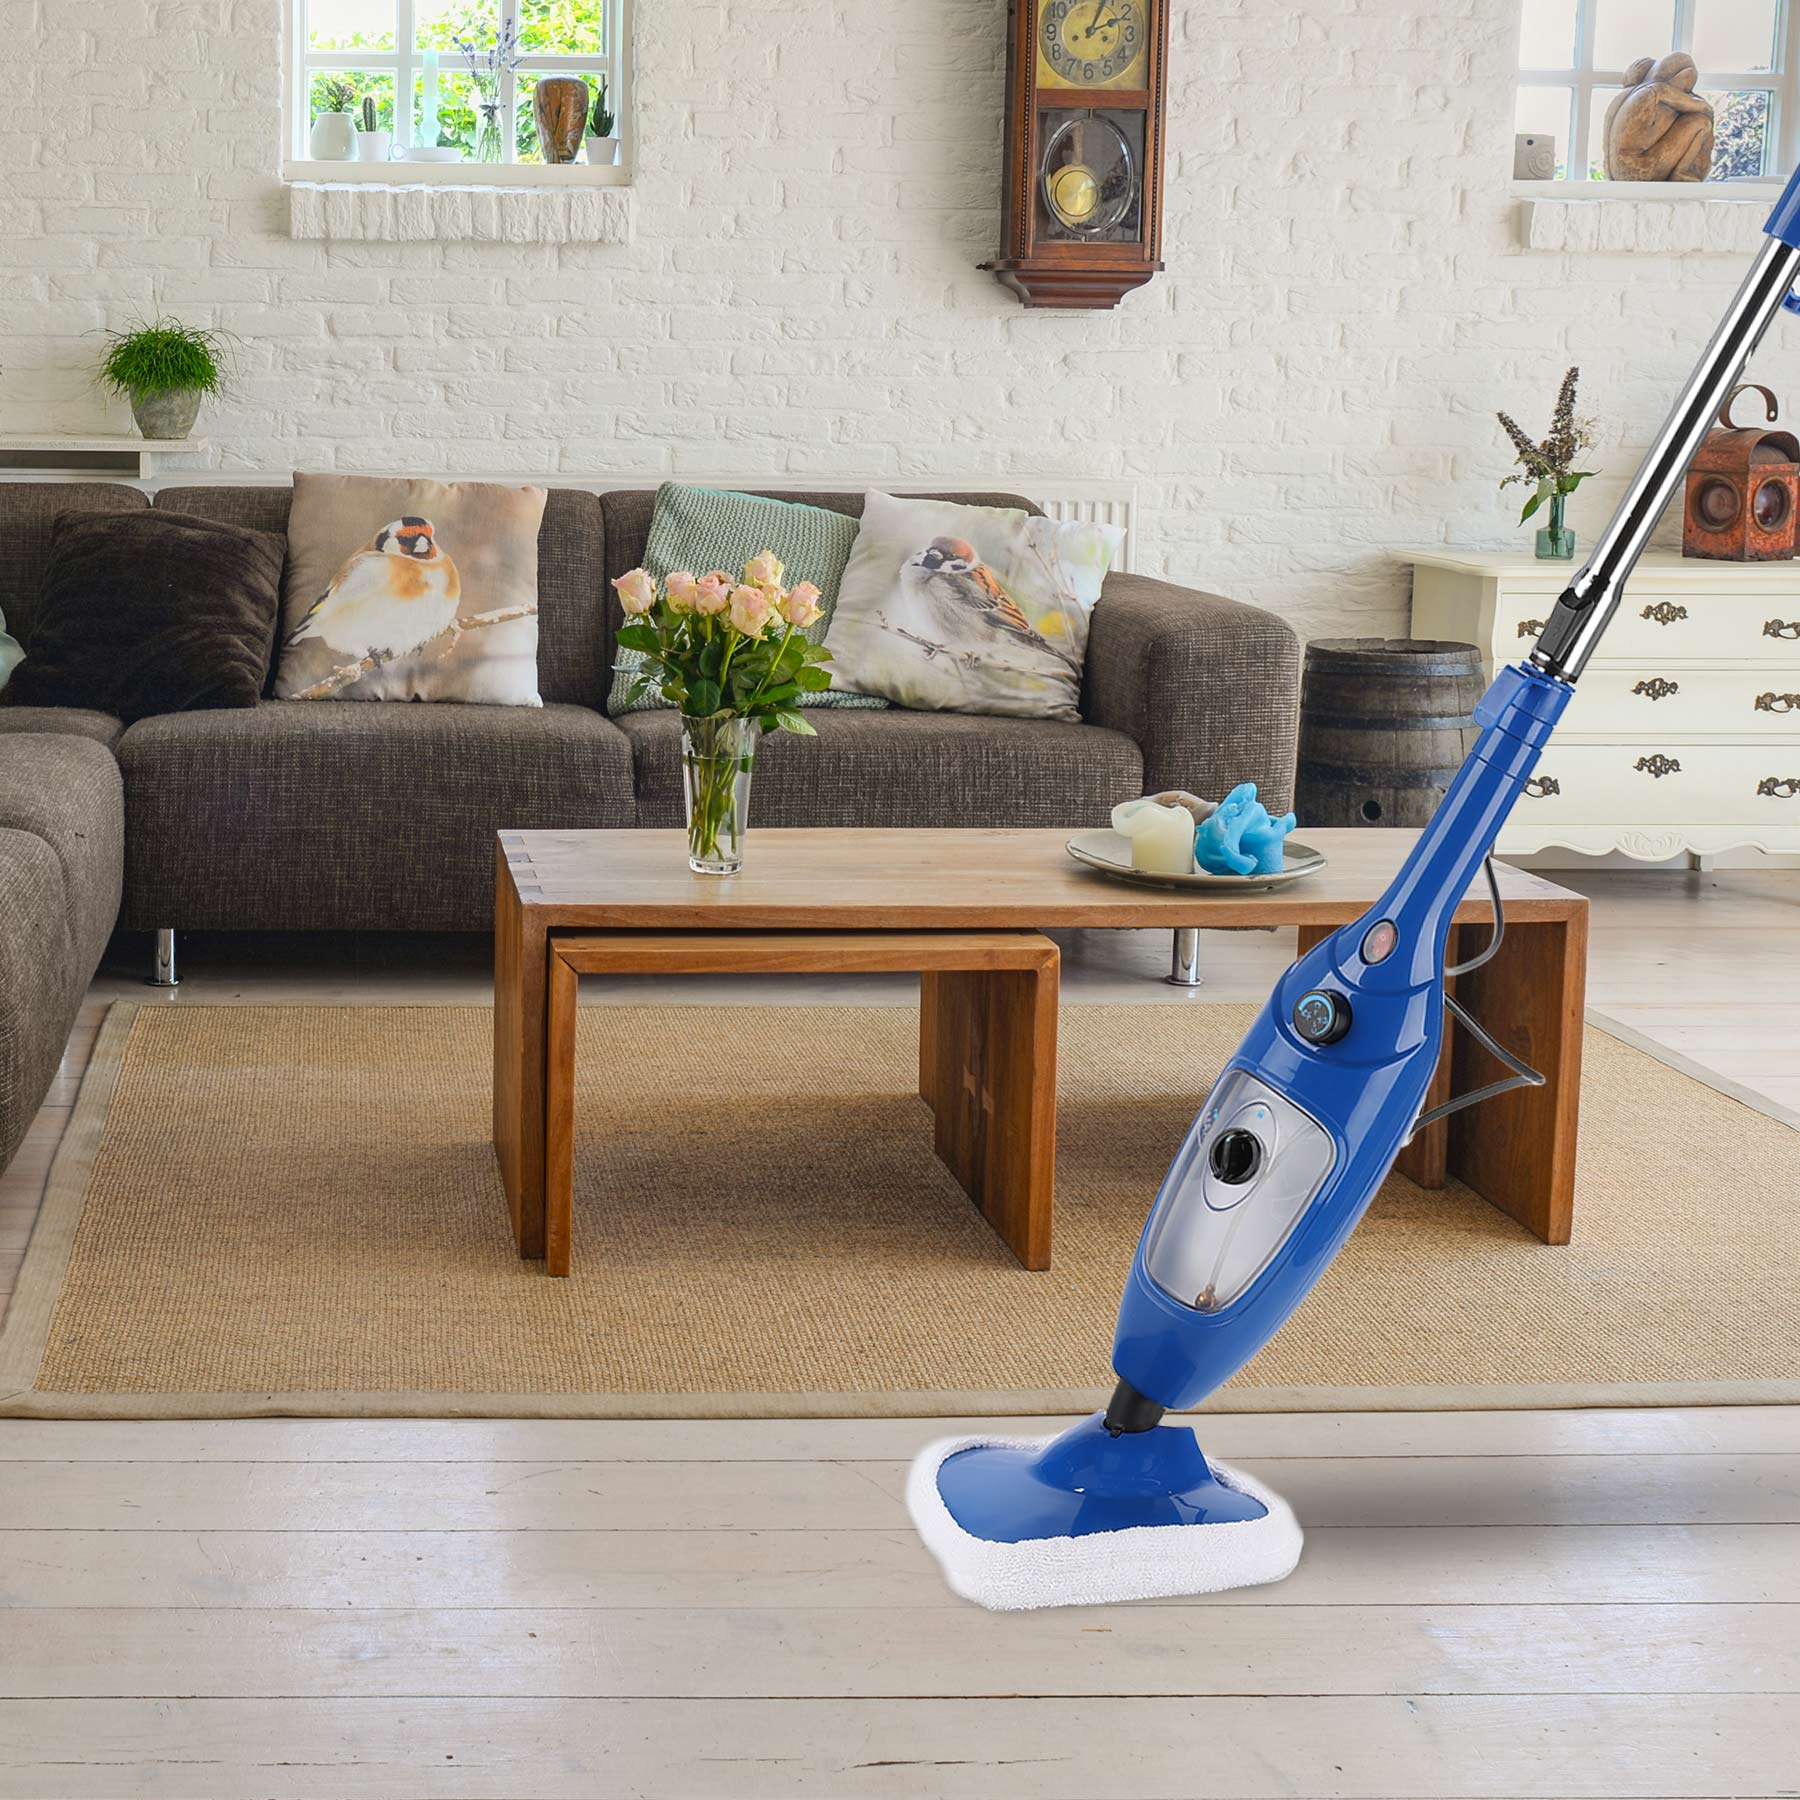 1300W Hot Steam & Spray Mop Adjustable Steam Floor Cleaner